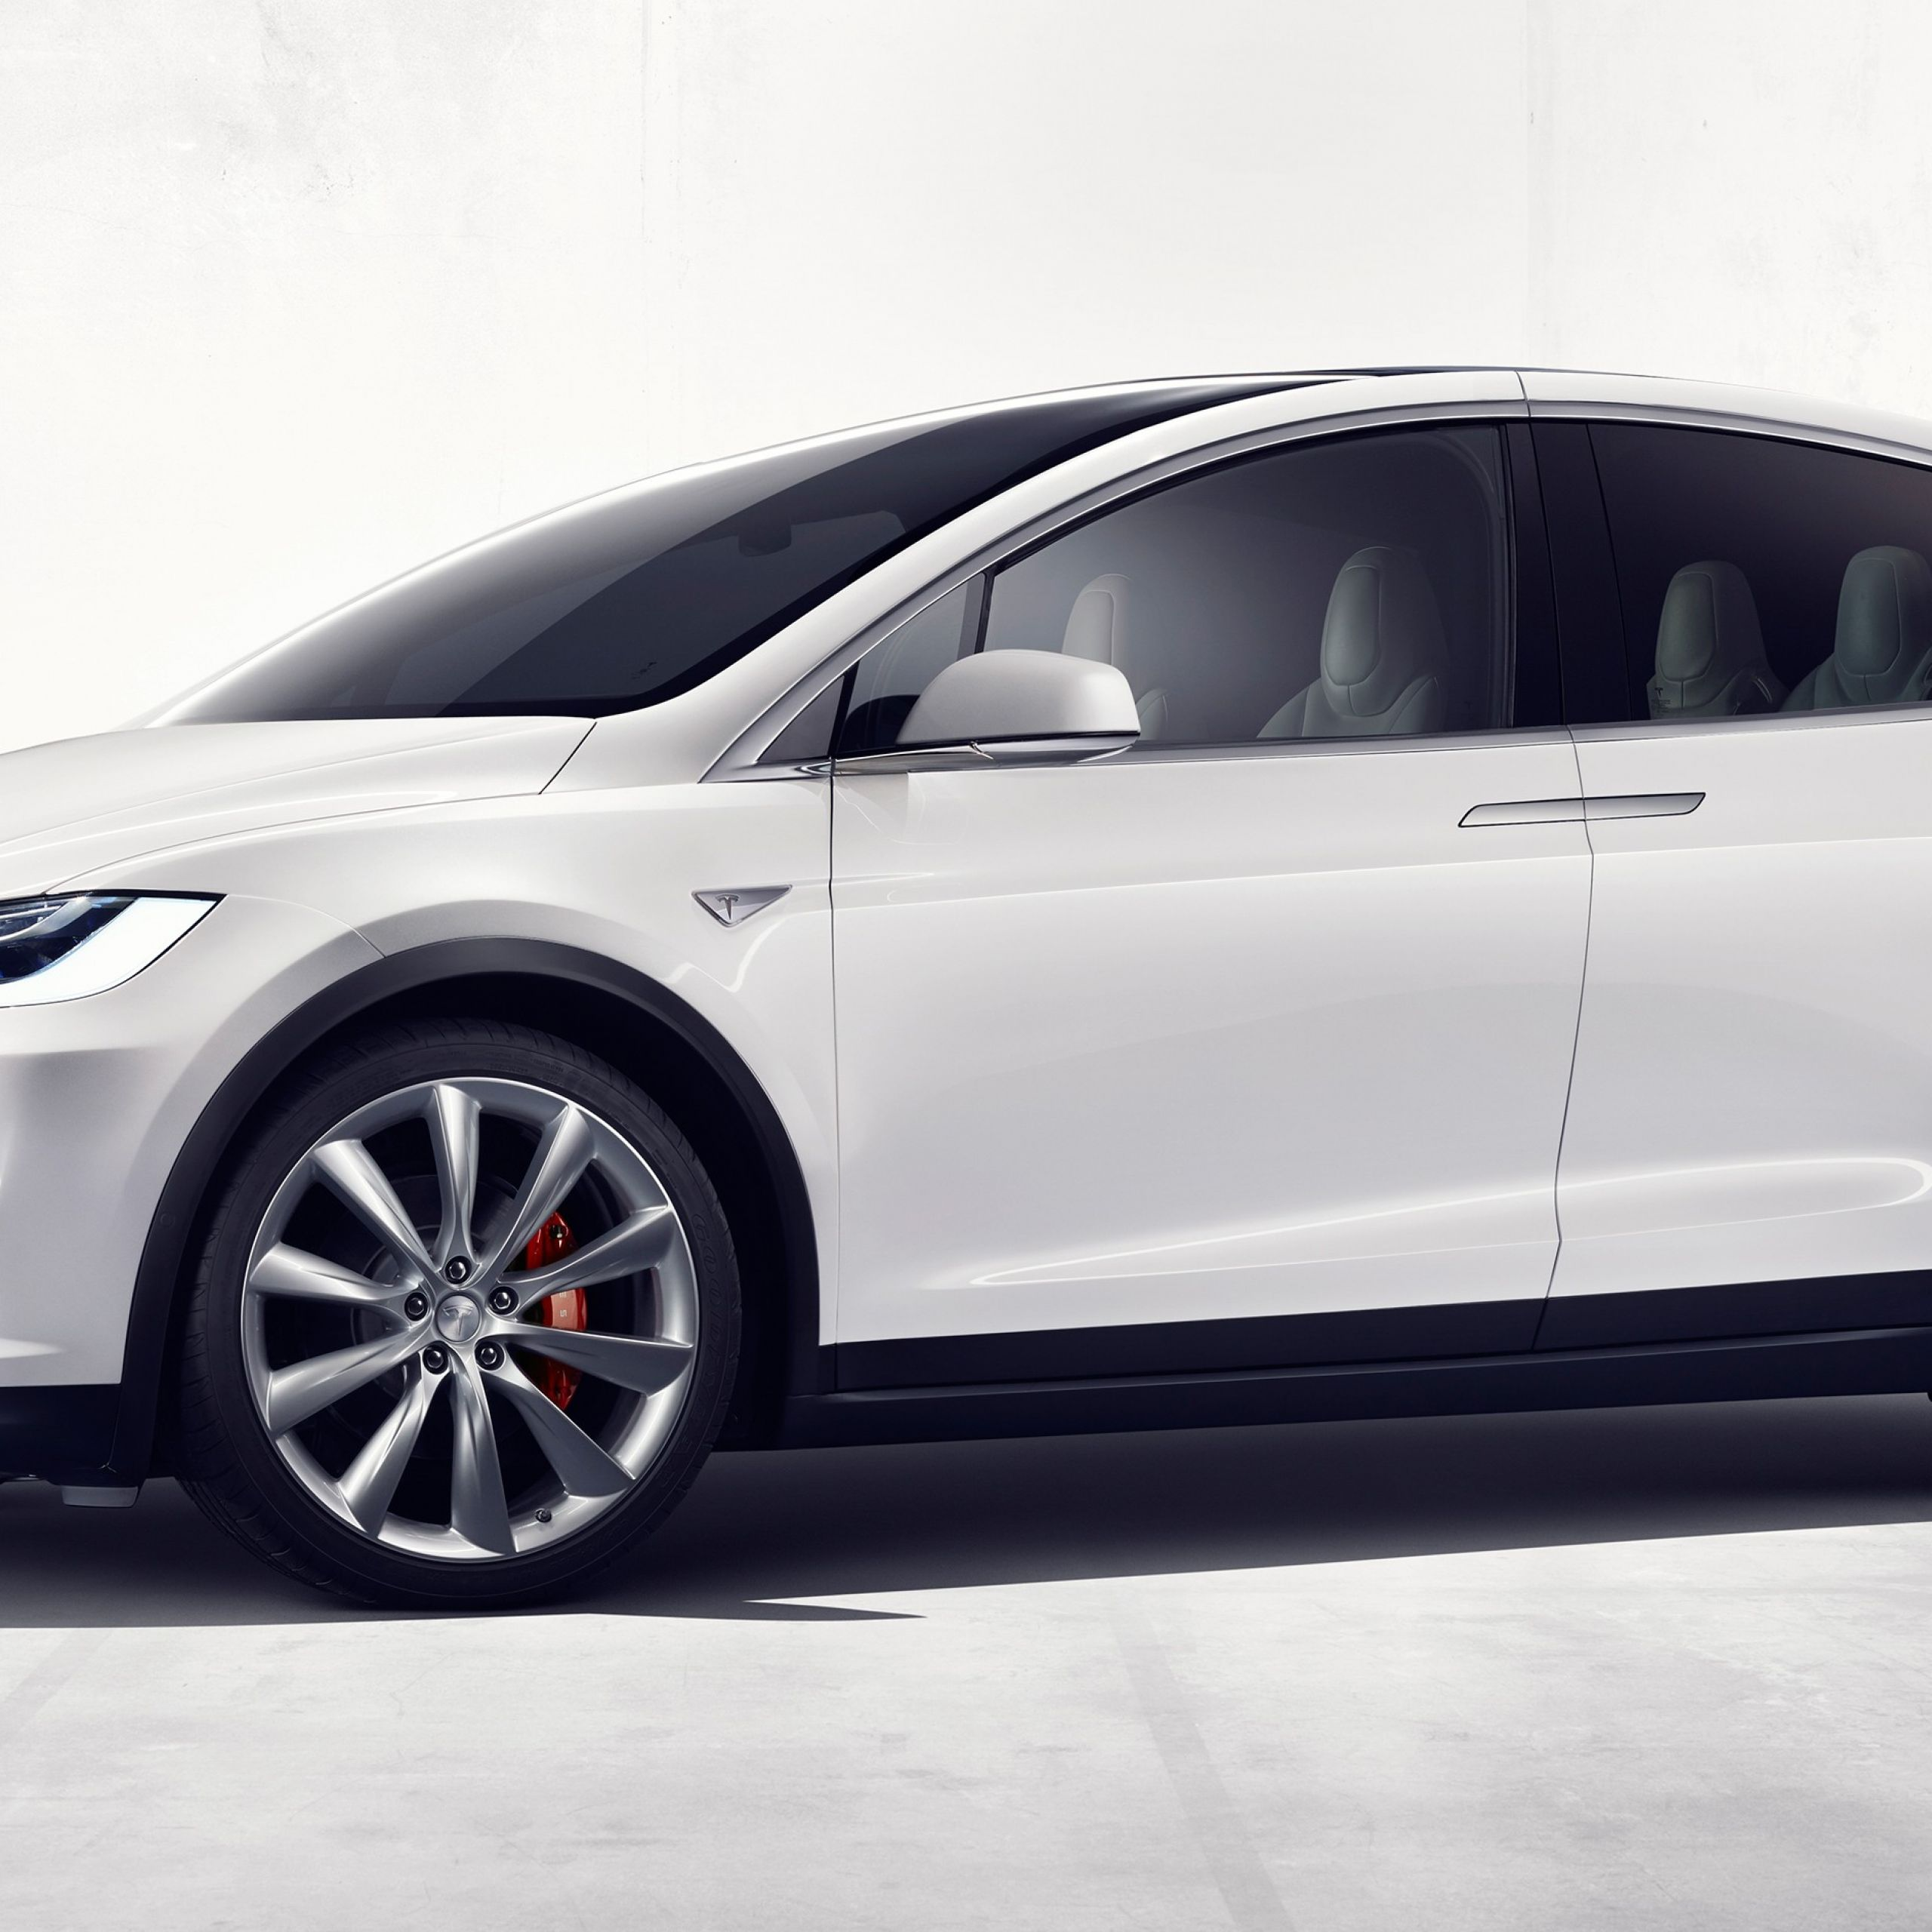 Tesla 2020 Beautiful Tesla Model Y Suv Production Delayed by One Year to 2020